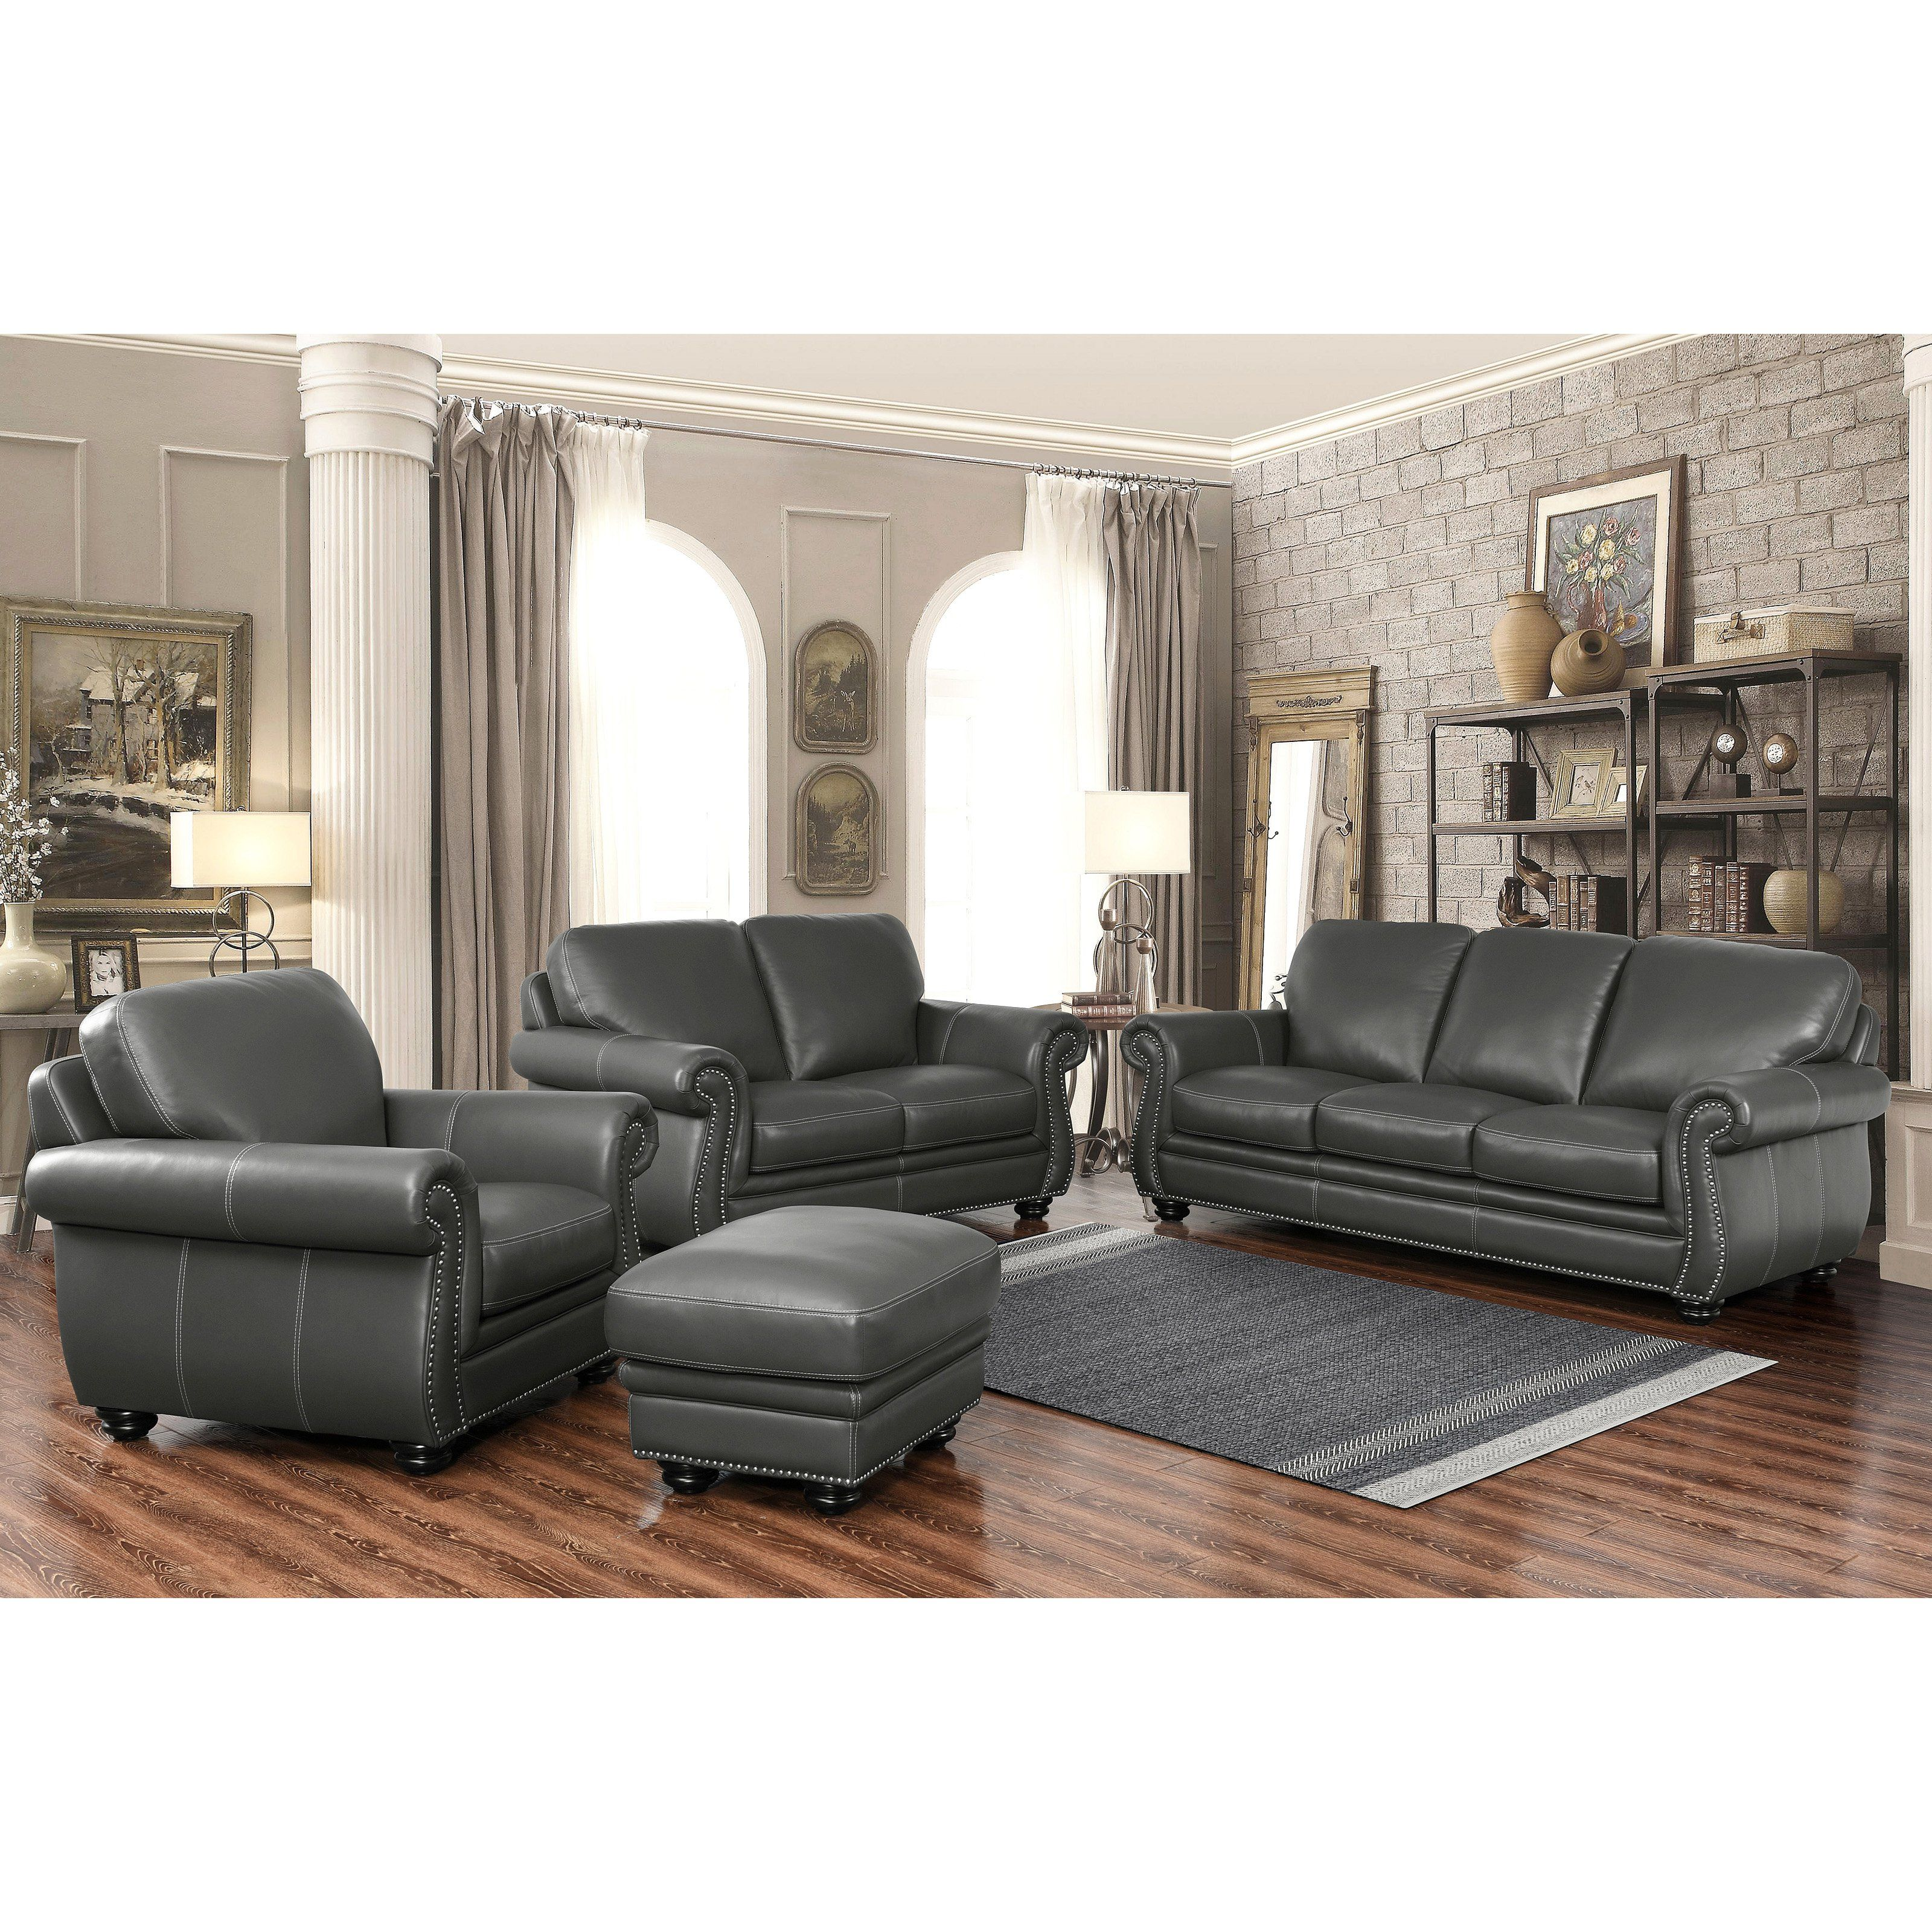 2293 Best Images About Leather Sofas And Living Room: Abbyson Dasher Grey Top Grain Leather Sofa Loveseat